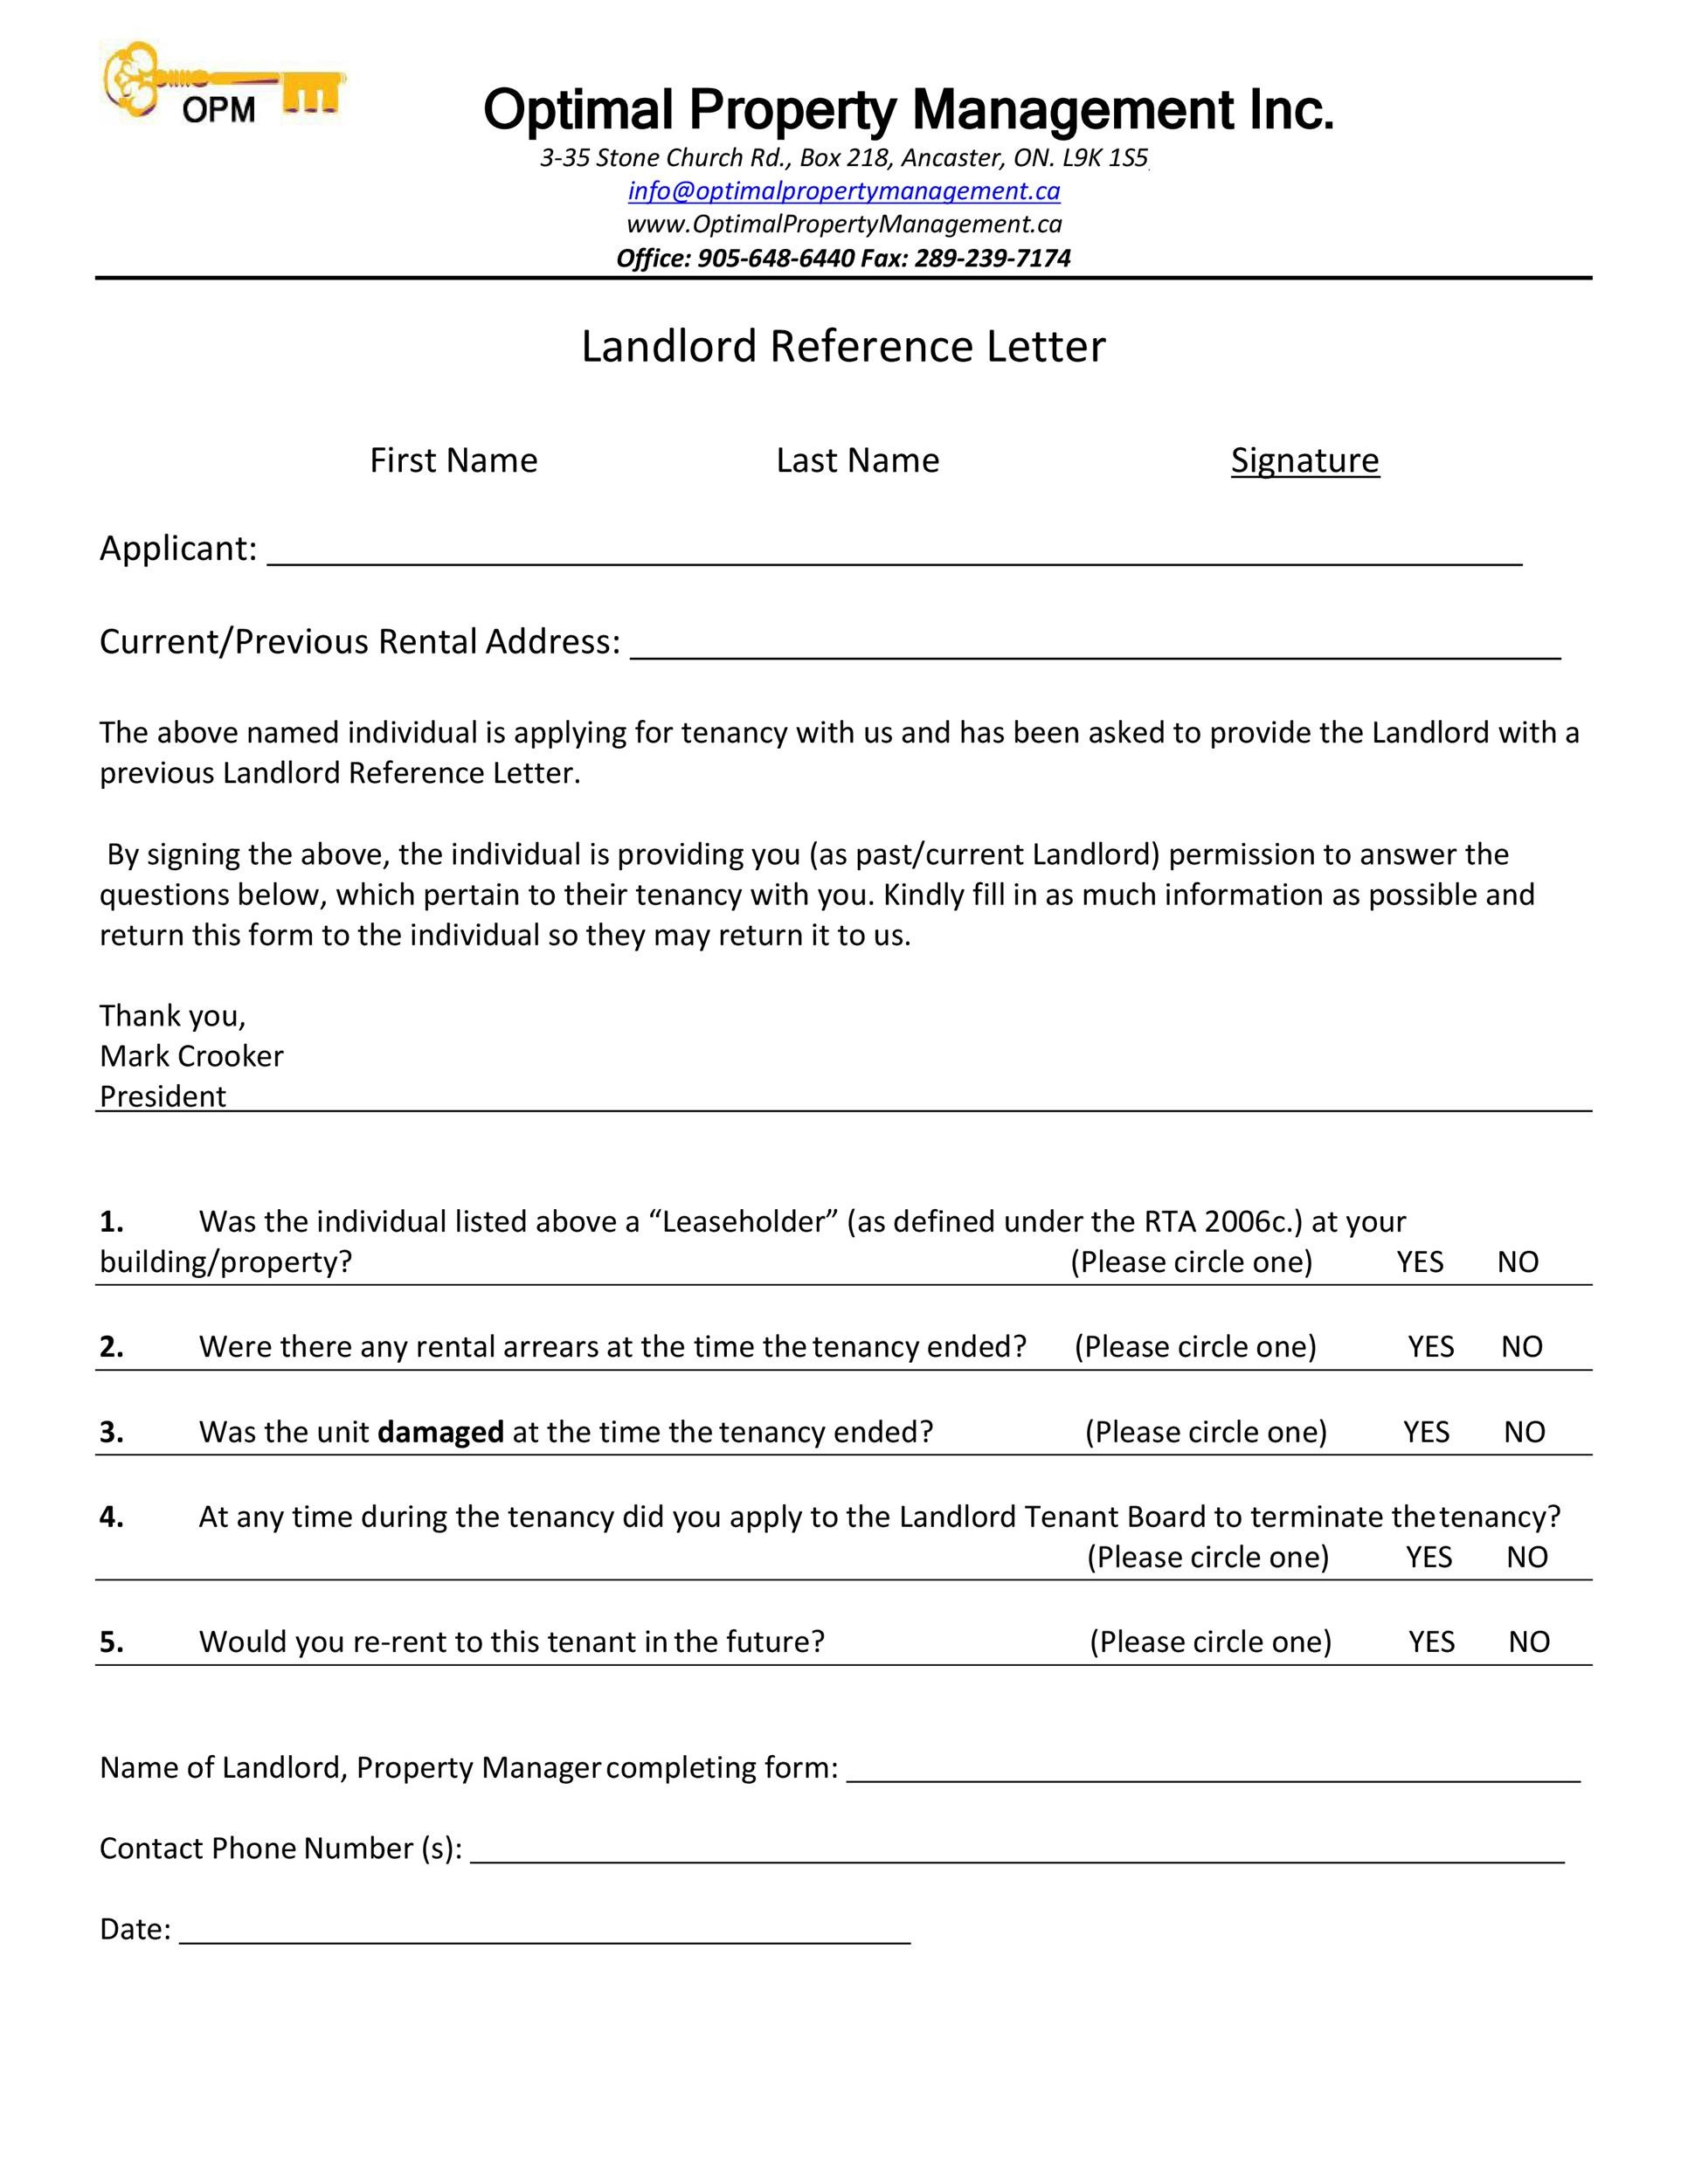 Free landlord reference letter 30